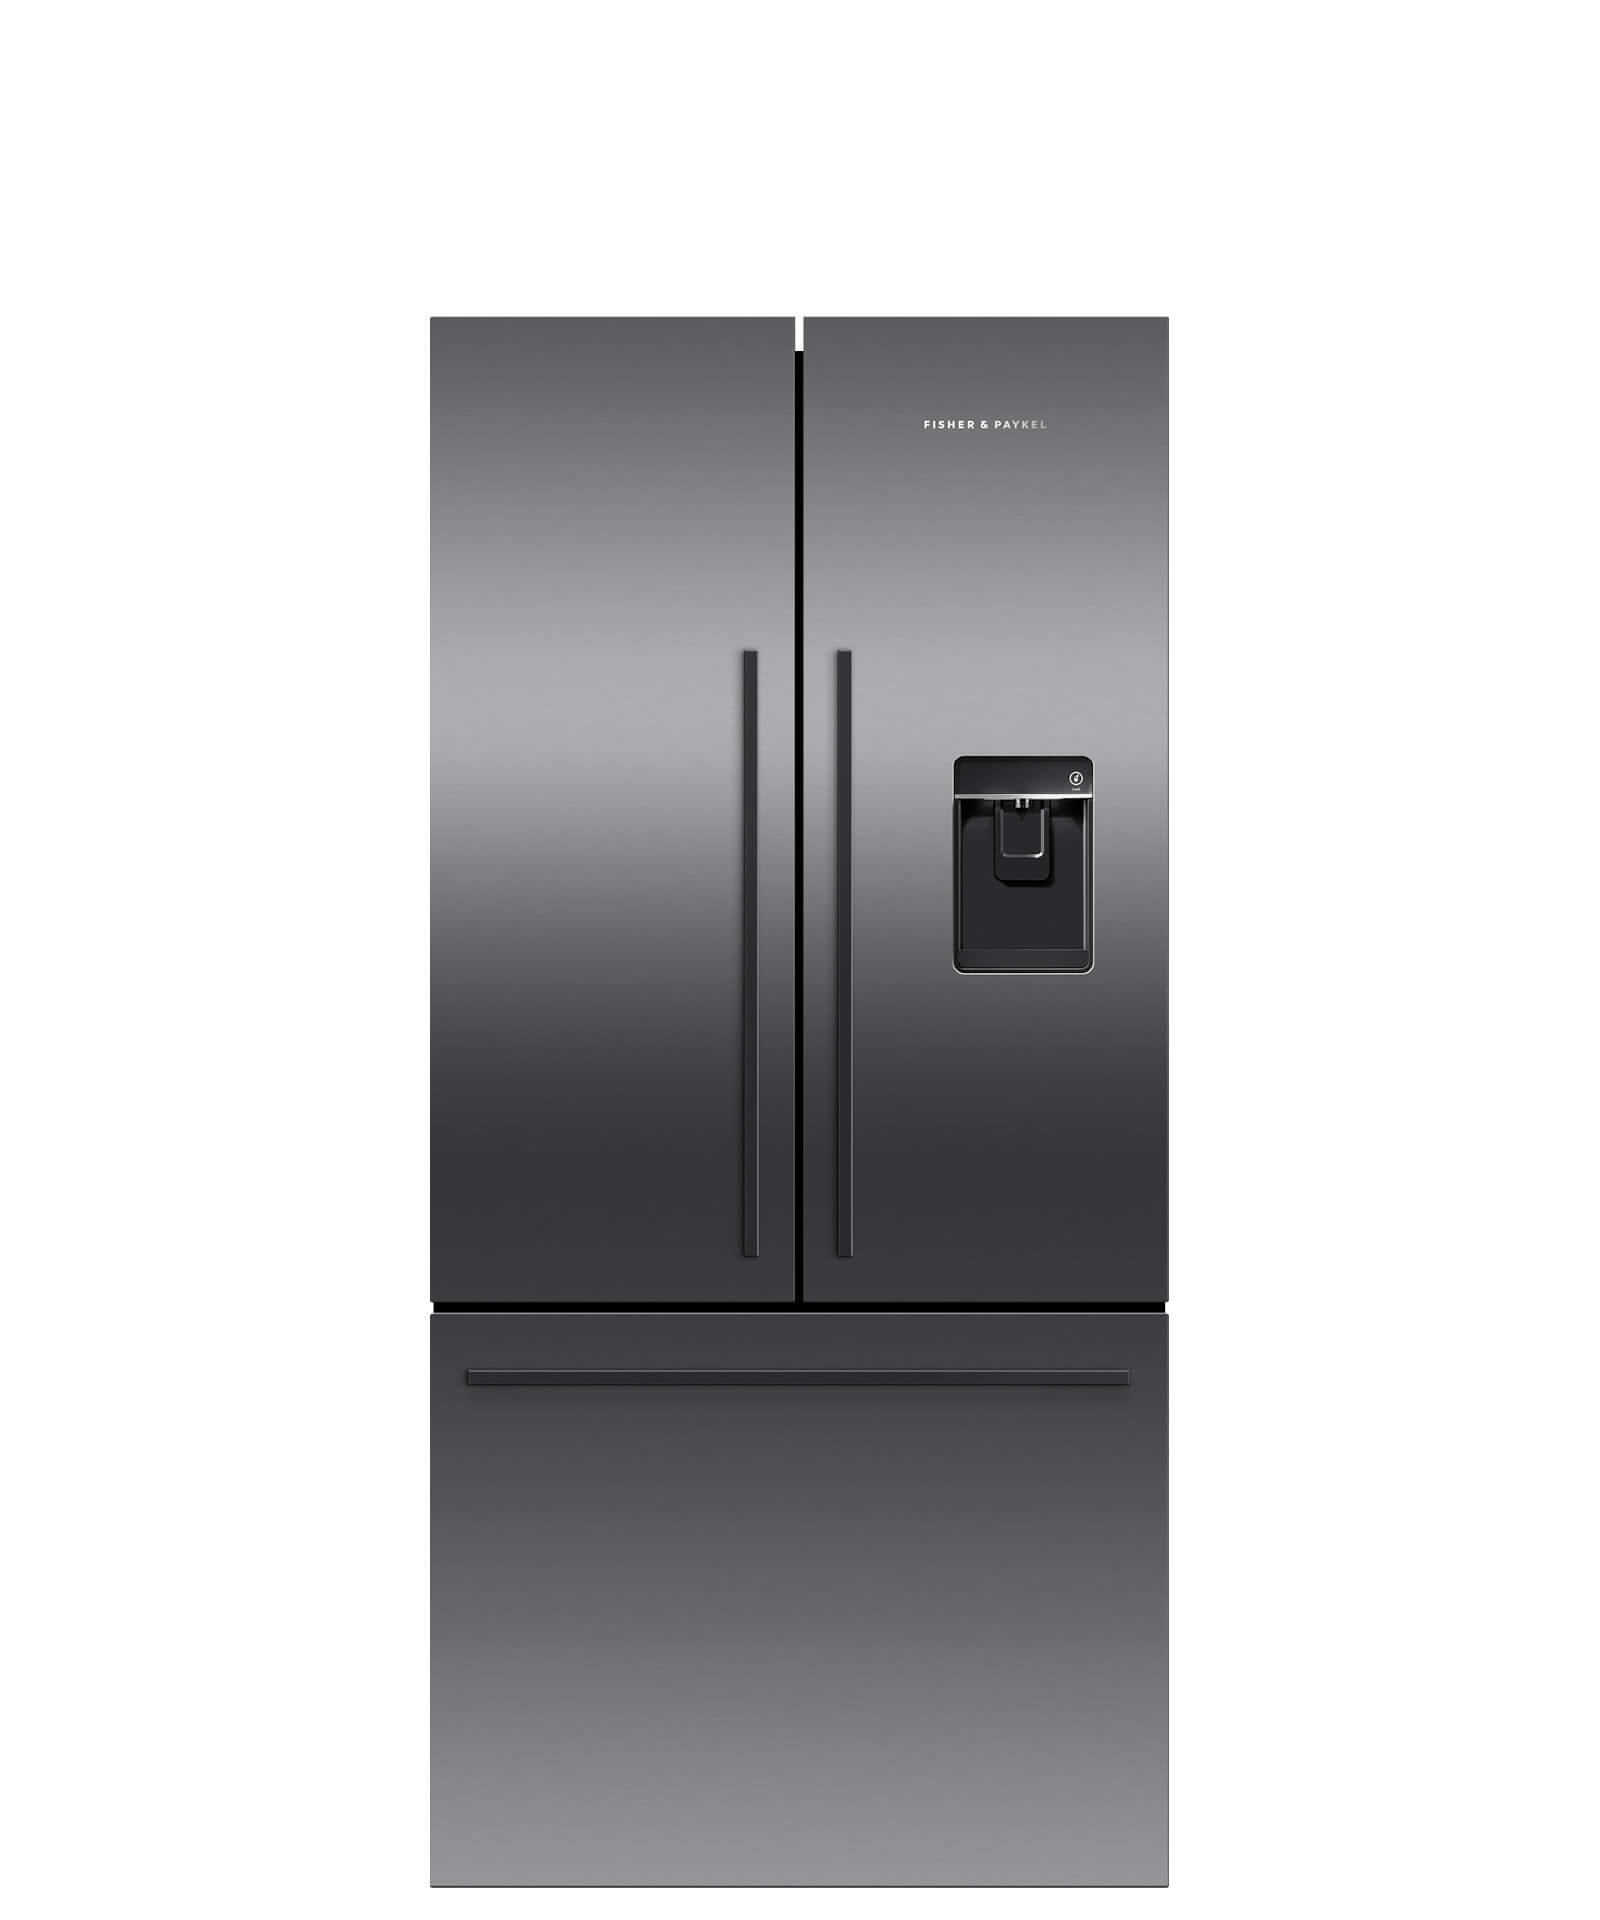 Fisher and Paykel Black Stainless Steel French Door Refrigerator, 17 cu ft, Ice & Water